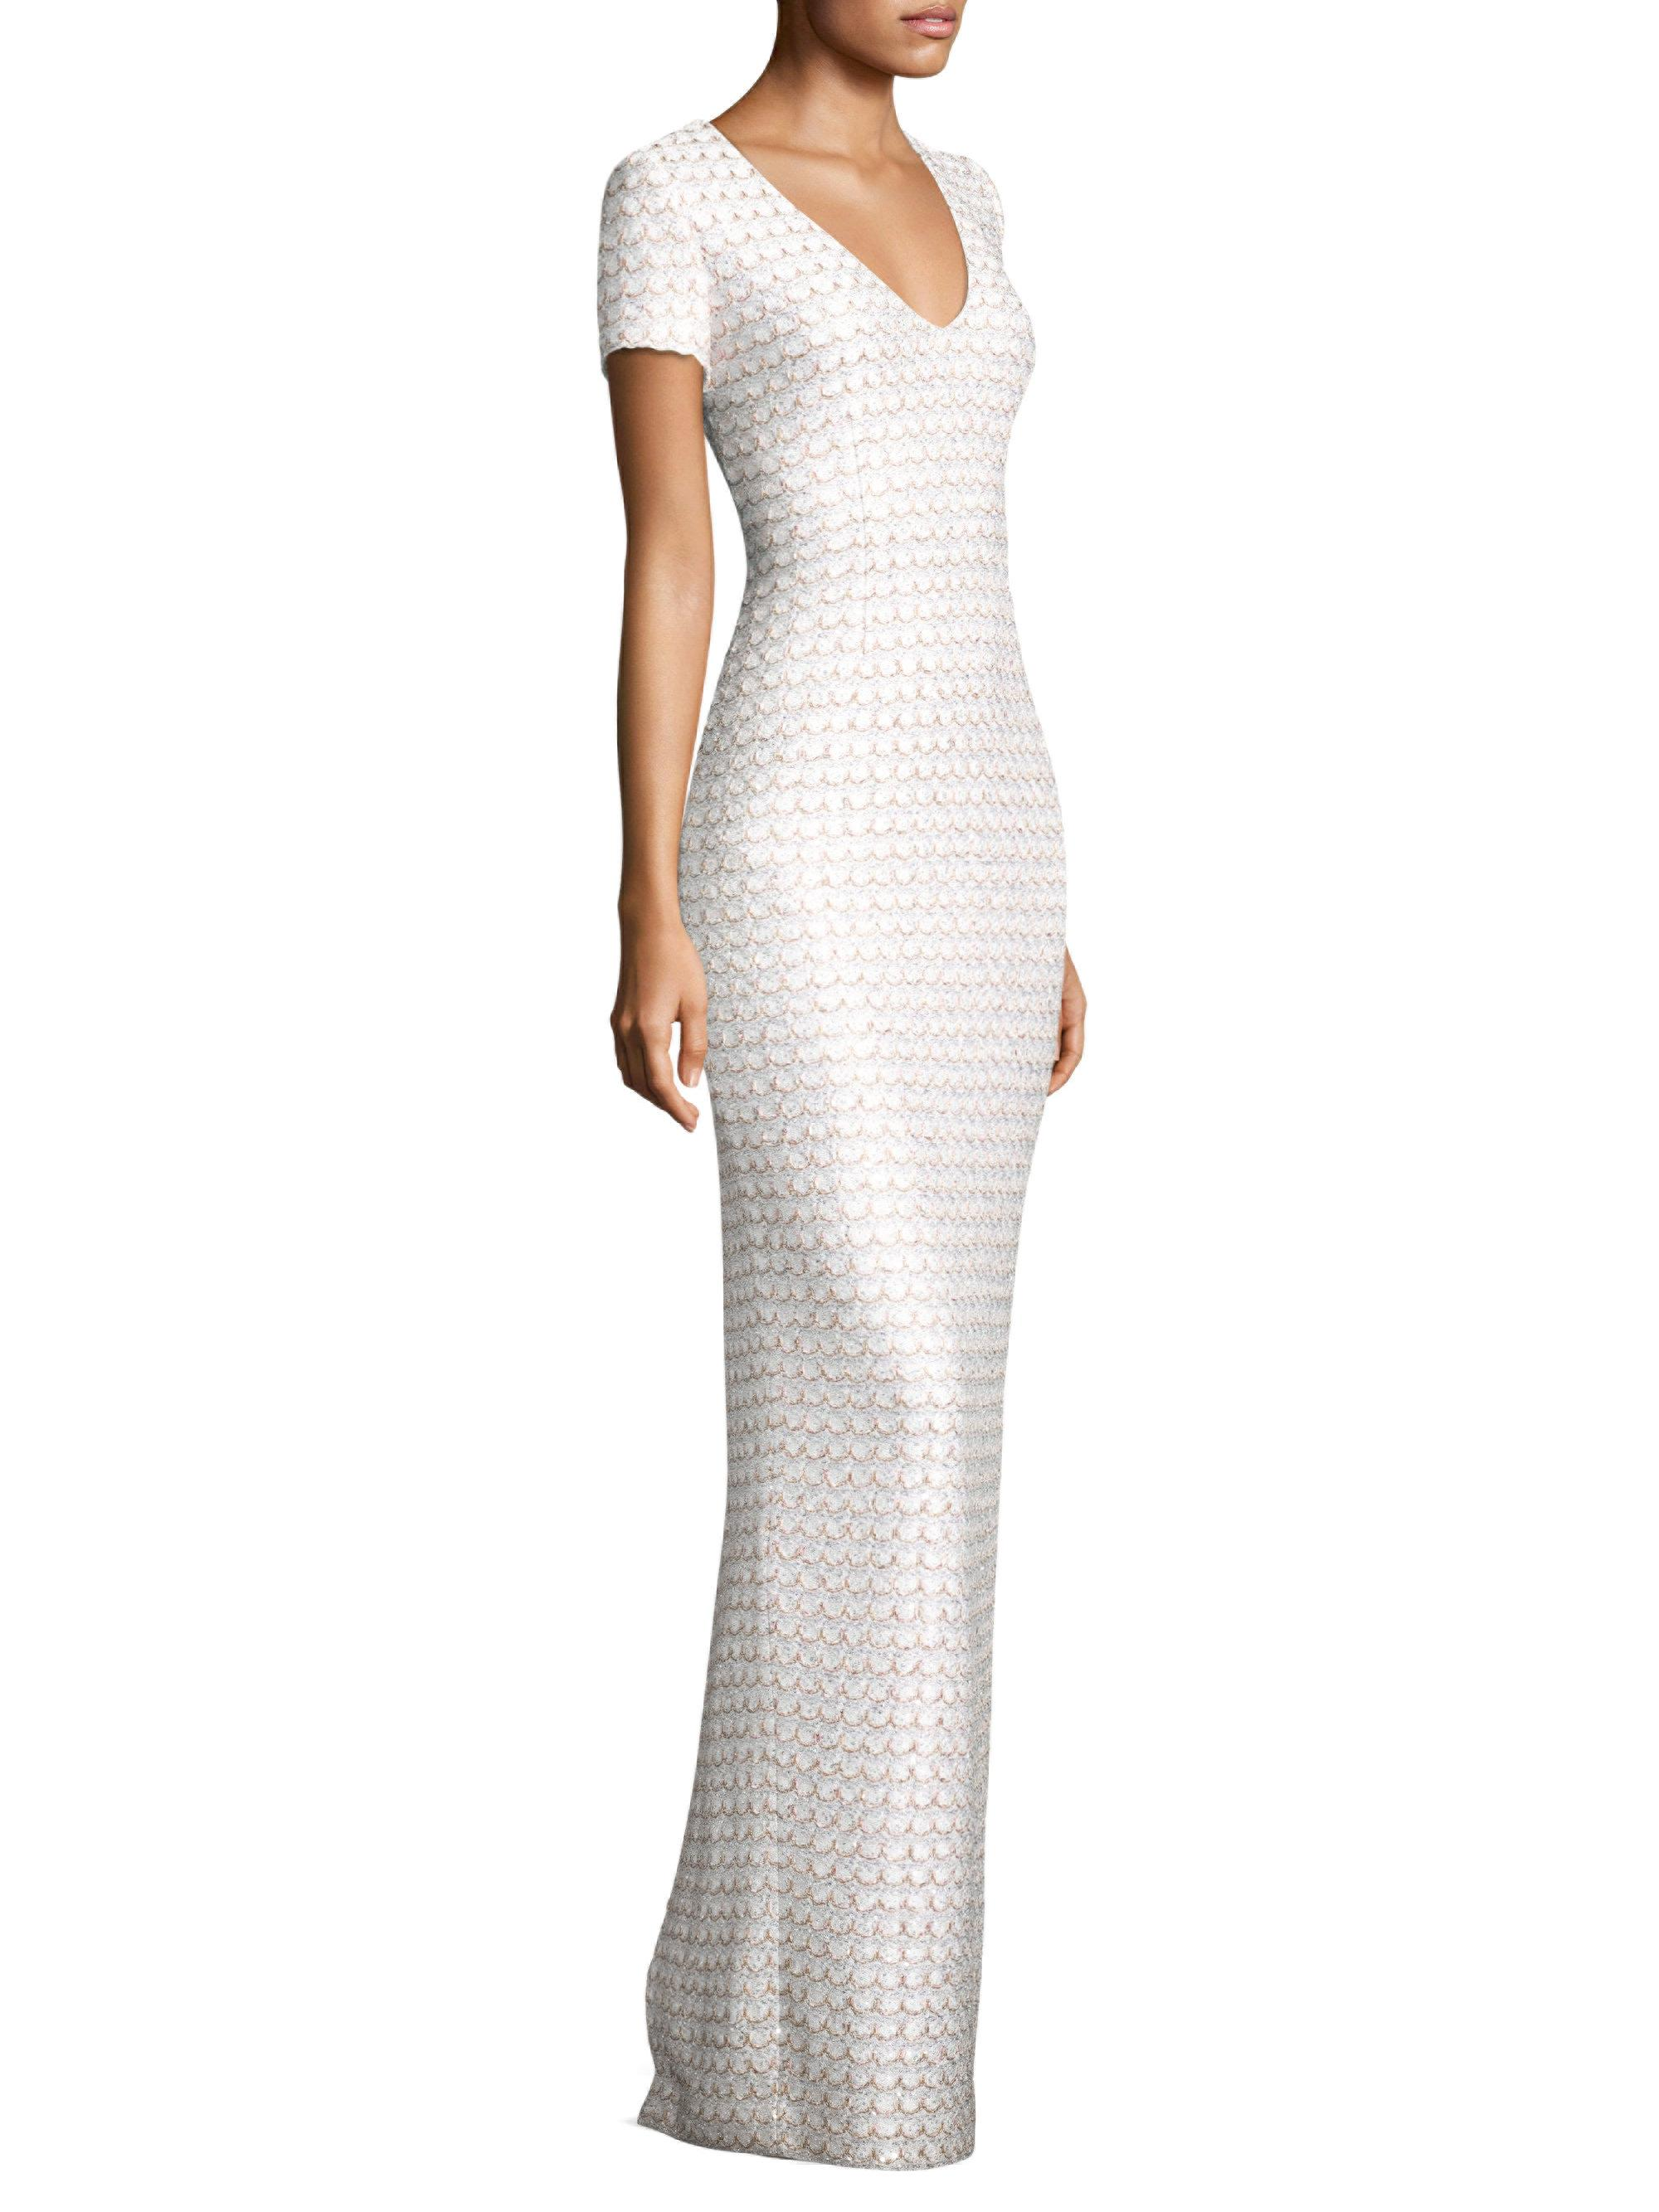 St. John Sequin Scallop Knit Gown in White - Lyst